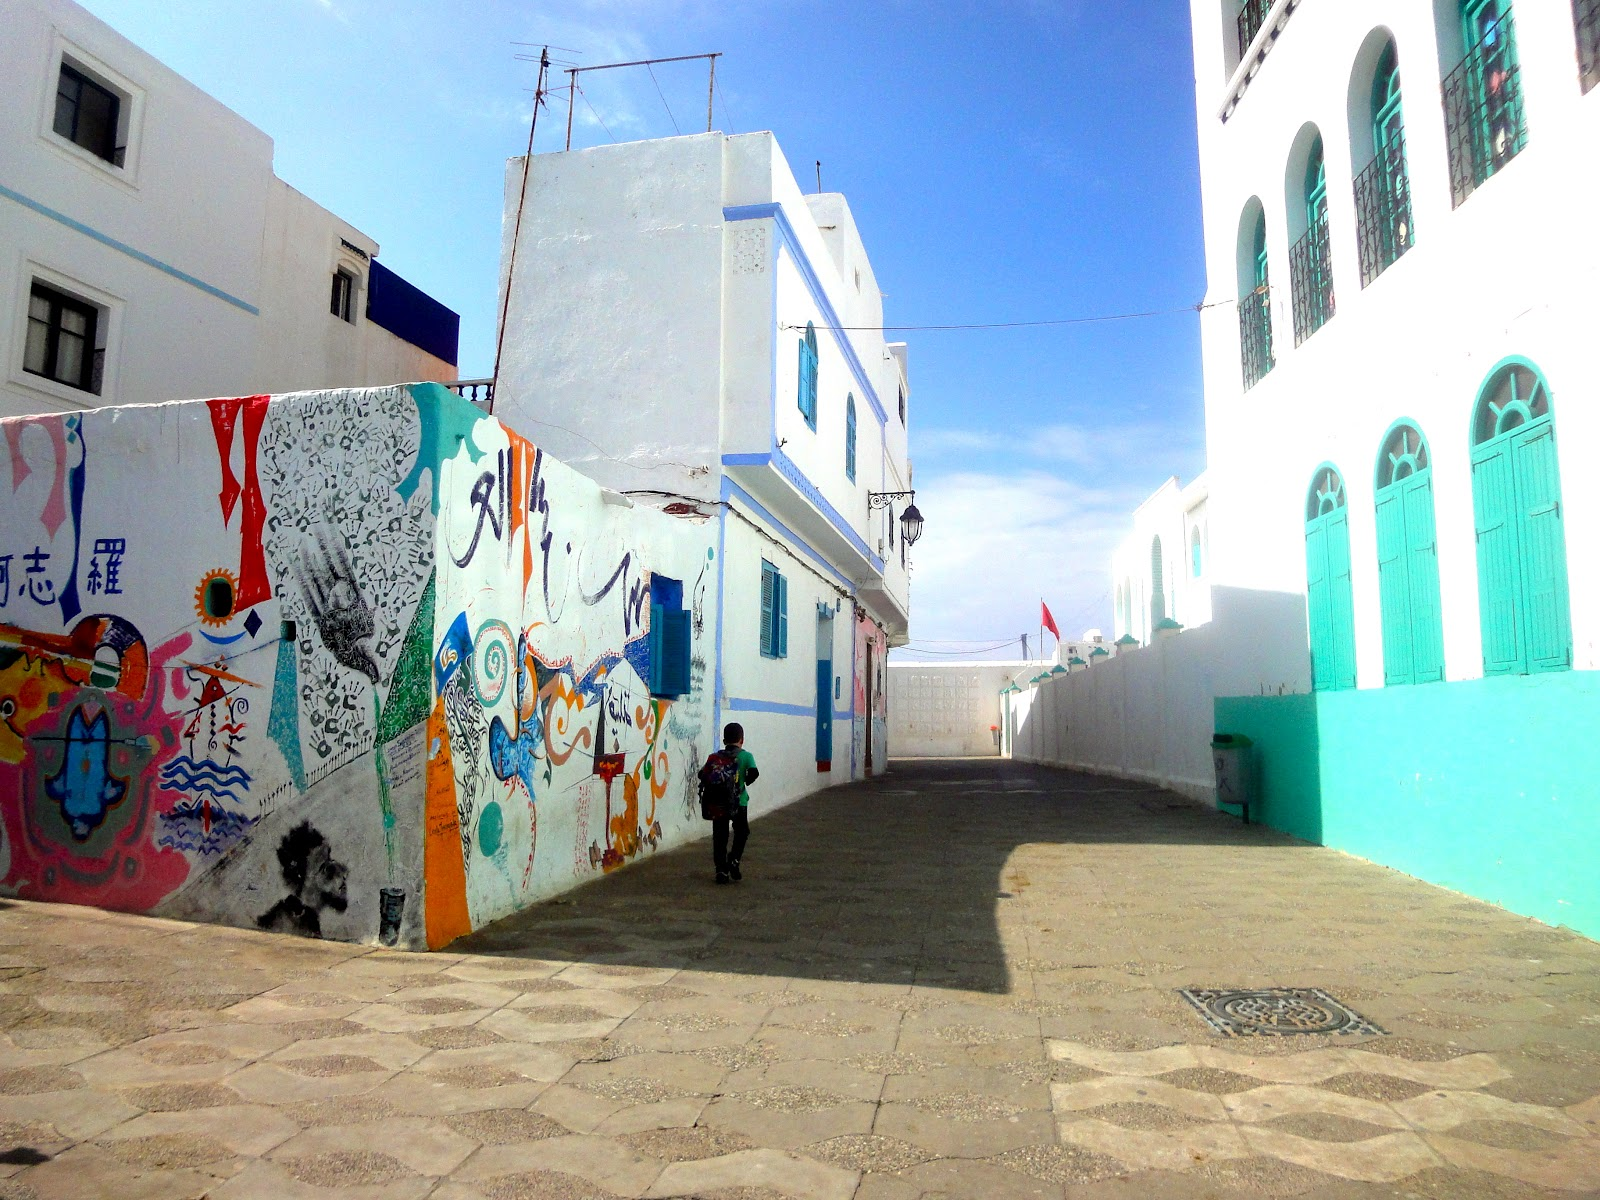 Asilah Morocco  city photos gallery : Here's Looking At You, Morocco: Asilah Adventures